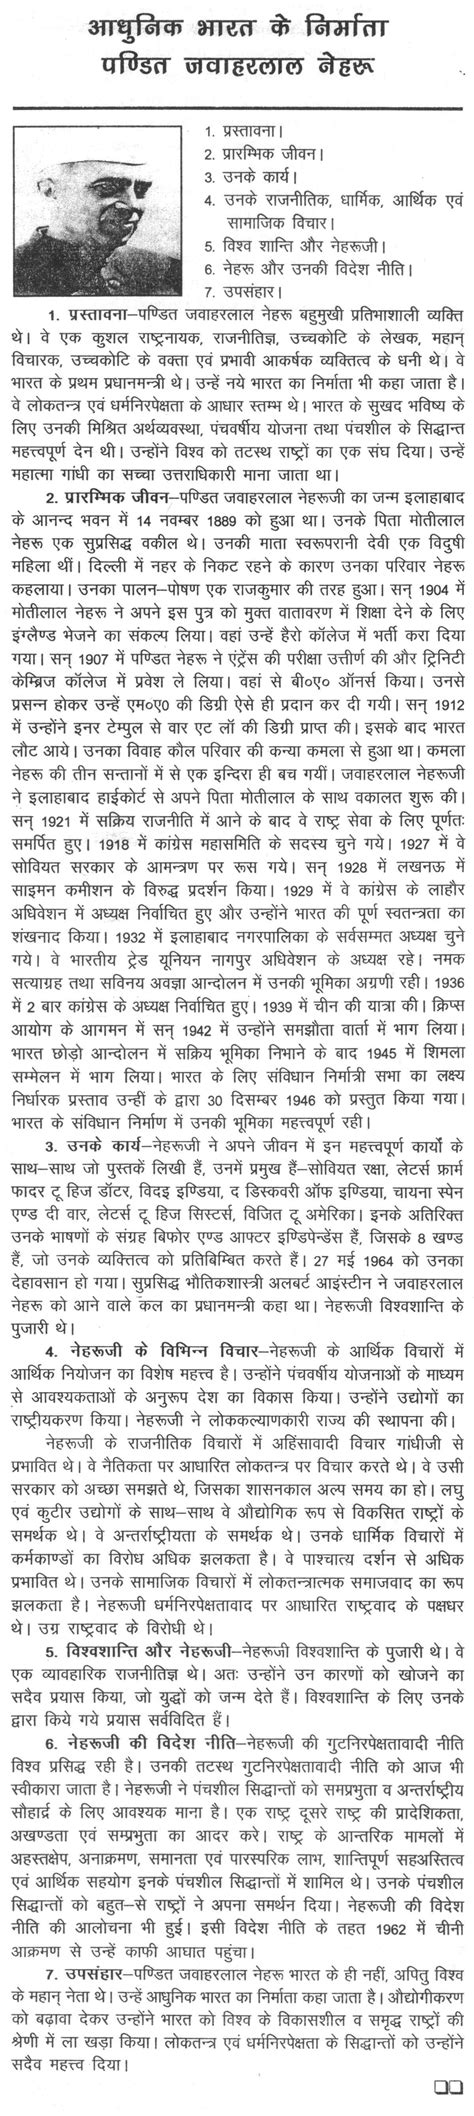 jawaharlal nehru biography in hindi essay writing introductions for essay on pandit jawaharlal nehru